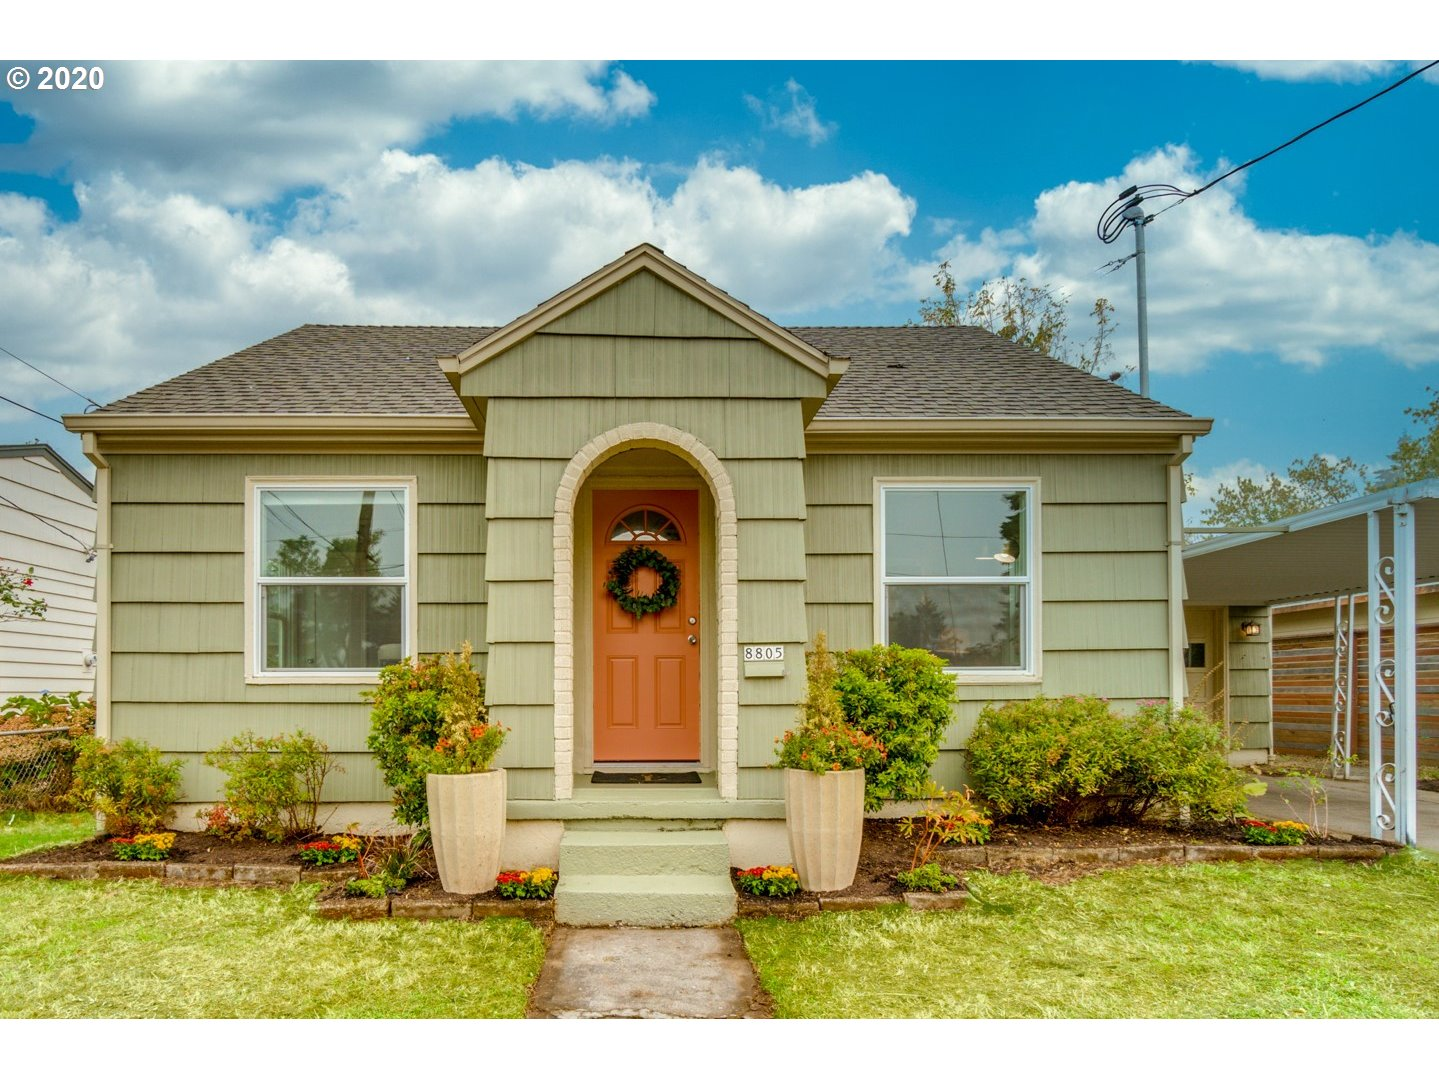 Tastefully renovated, turnkey home with a large backyard in Montavilla! Newer roof & windows, remodeled kitchen and bath, hardwood floors & tile throughout the main level. Tons of light in every room, with a huge bonus area upstairs! 88 Bike Score! Attached oversized garage with laundry area. [Home Energy Score = 4. HES Report at https://rpt.greenbuildingregistry.com/hes/OR10186909.pdf]